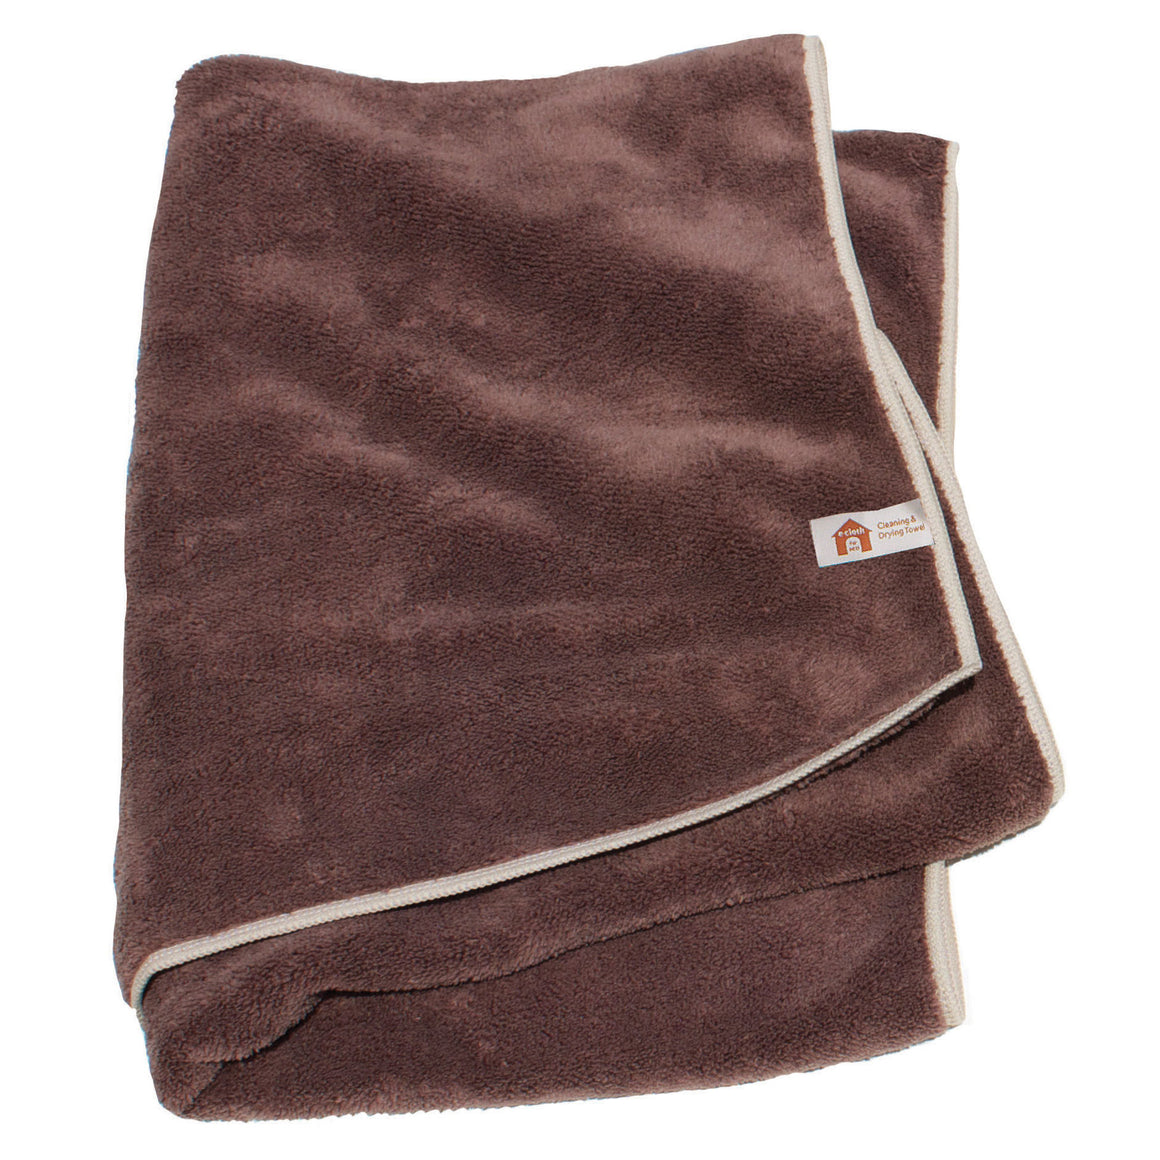 Pet Cleaning & Drying Towel - Super-Absorbent Microfiber - Medium